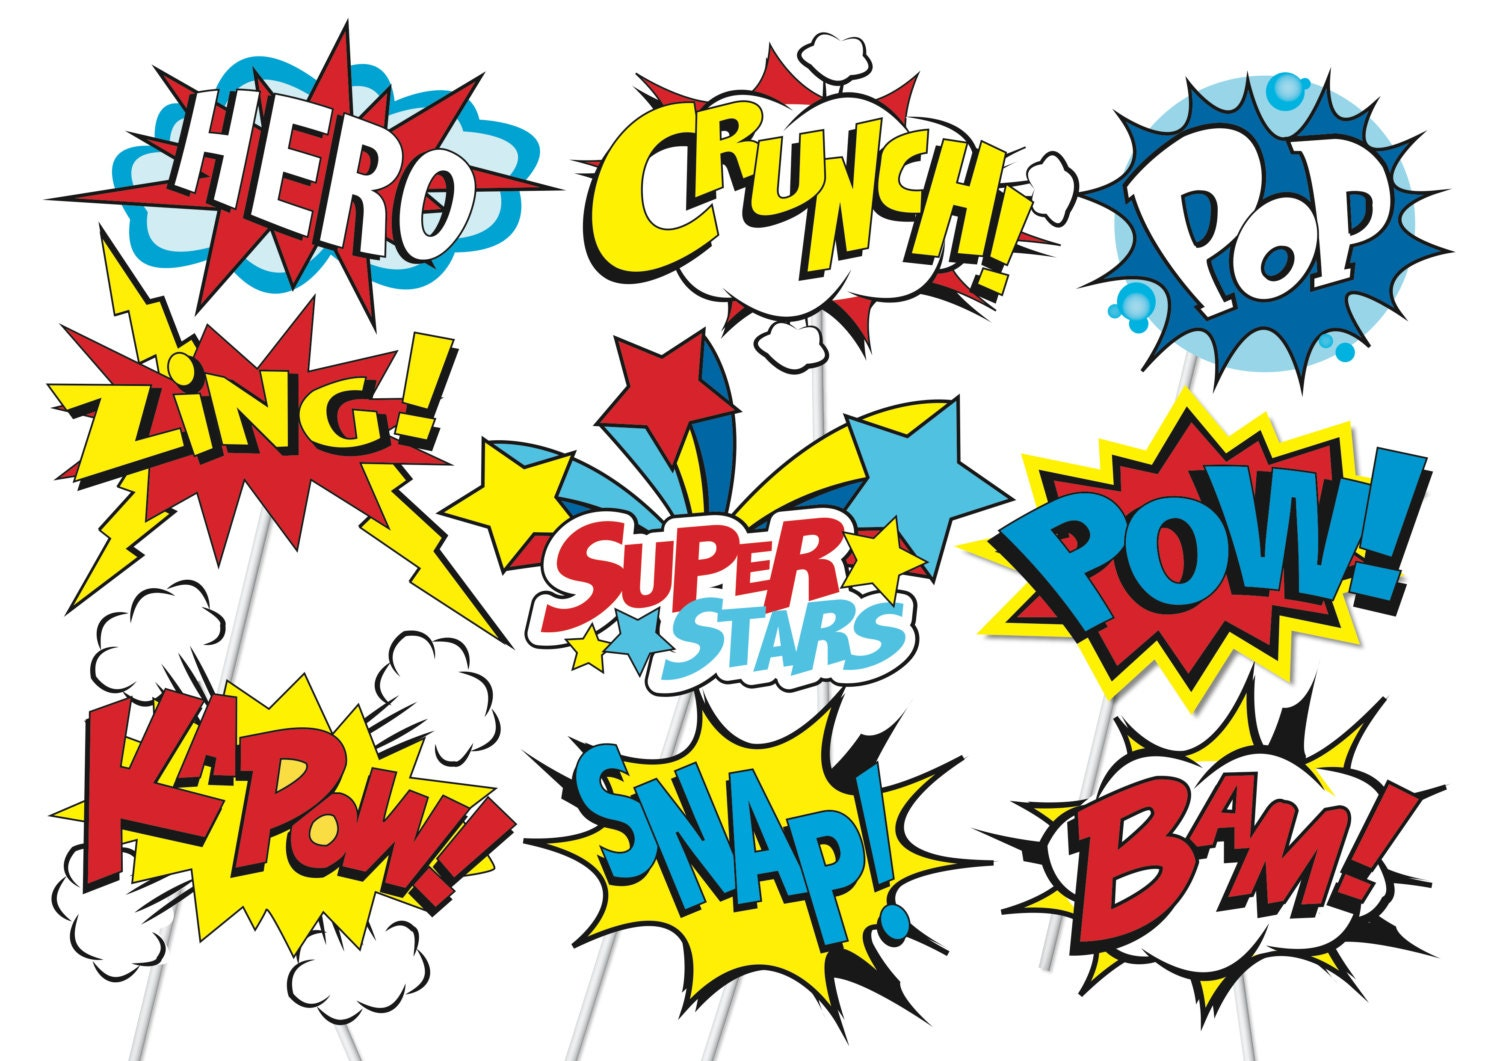 Superhero Action Party Photo Booth Props or Superhero cake